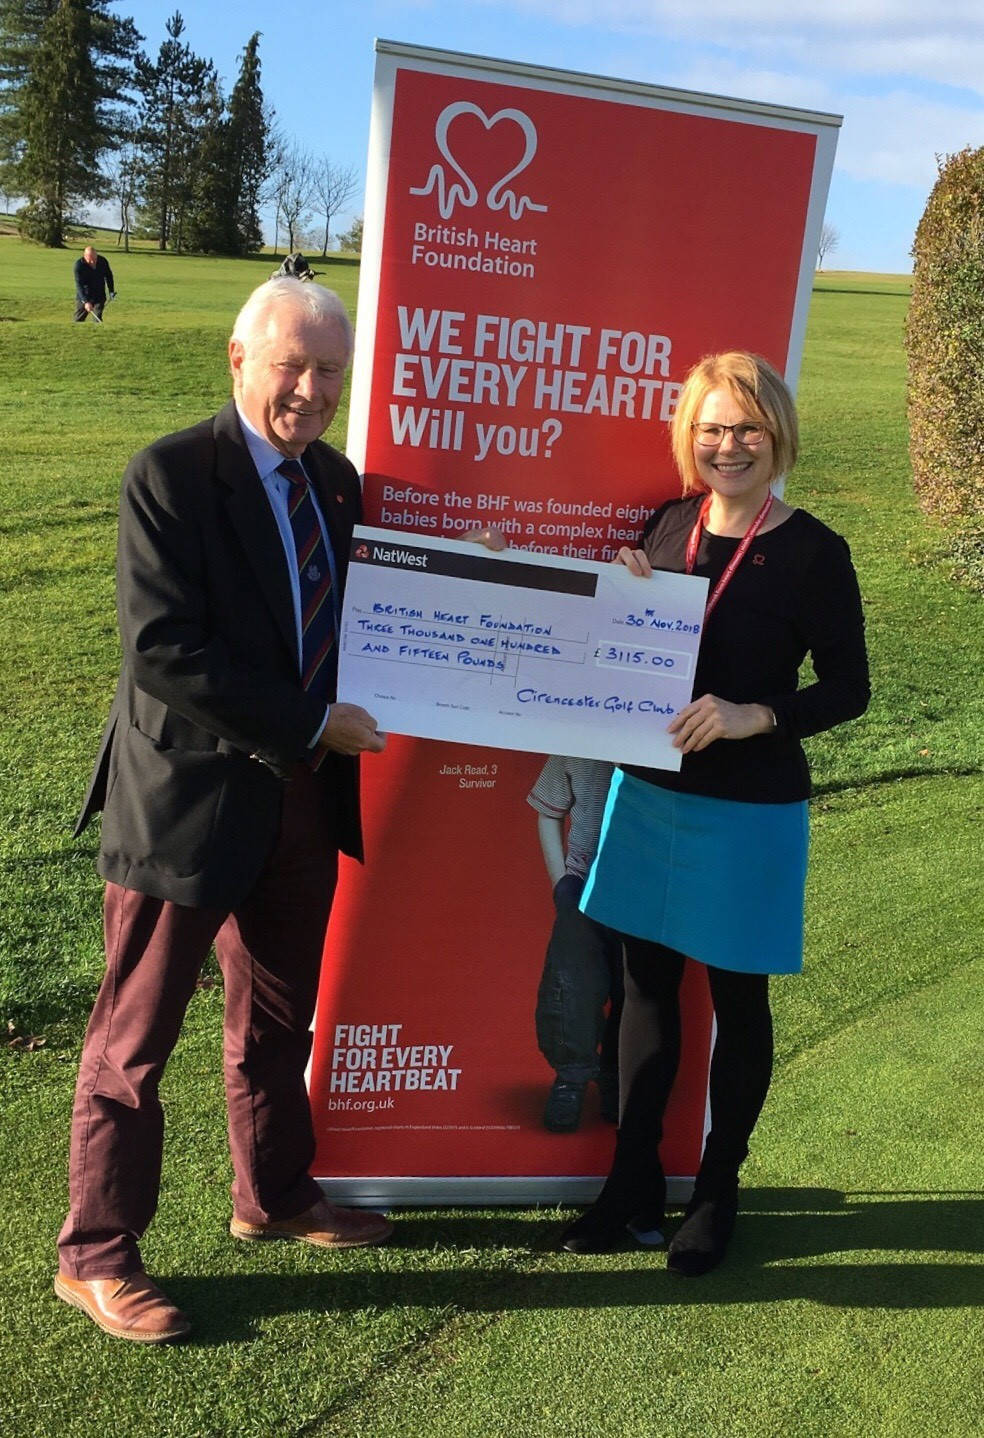 David Soar, captain of Cirencester Golf Club, presents a cheque for £3,115 to Sarah Standing of the British Heart Foundation